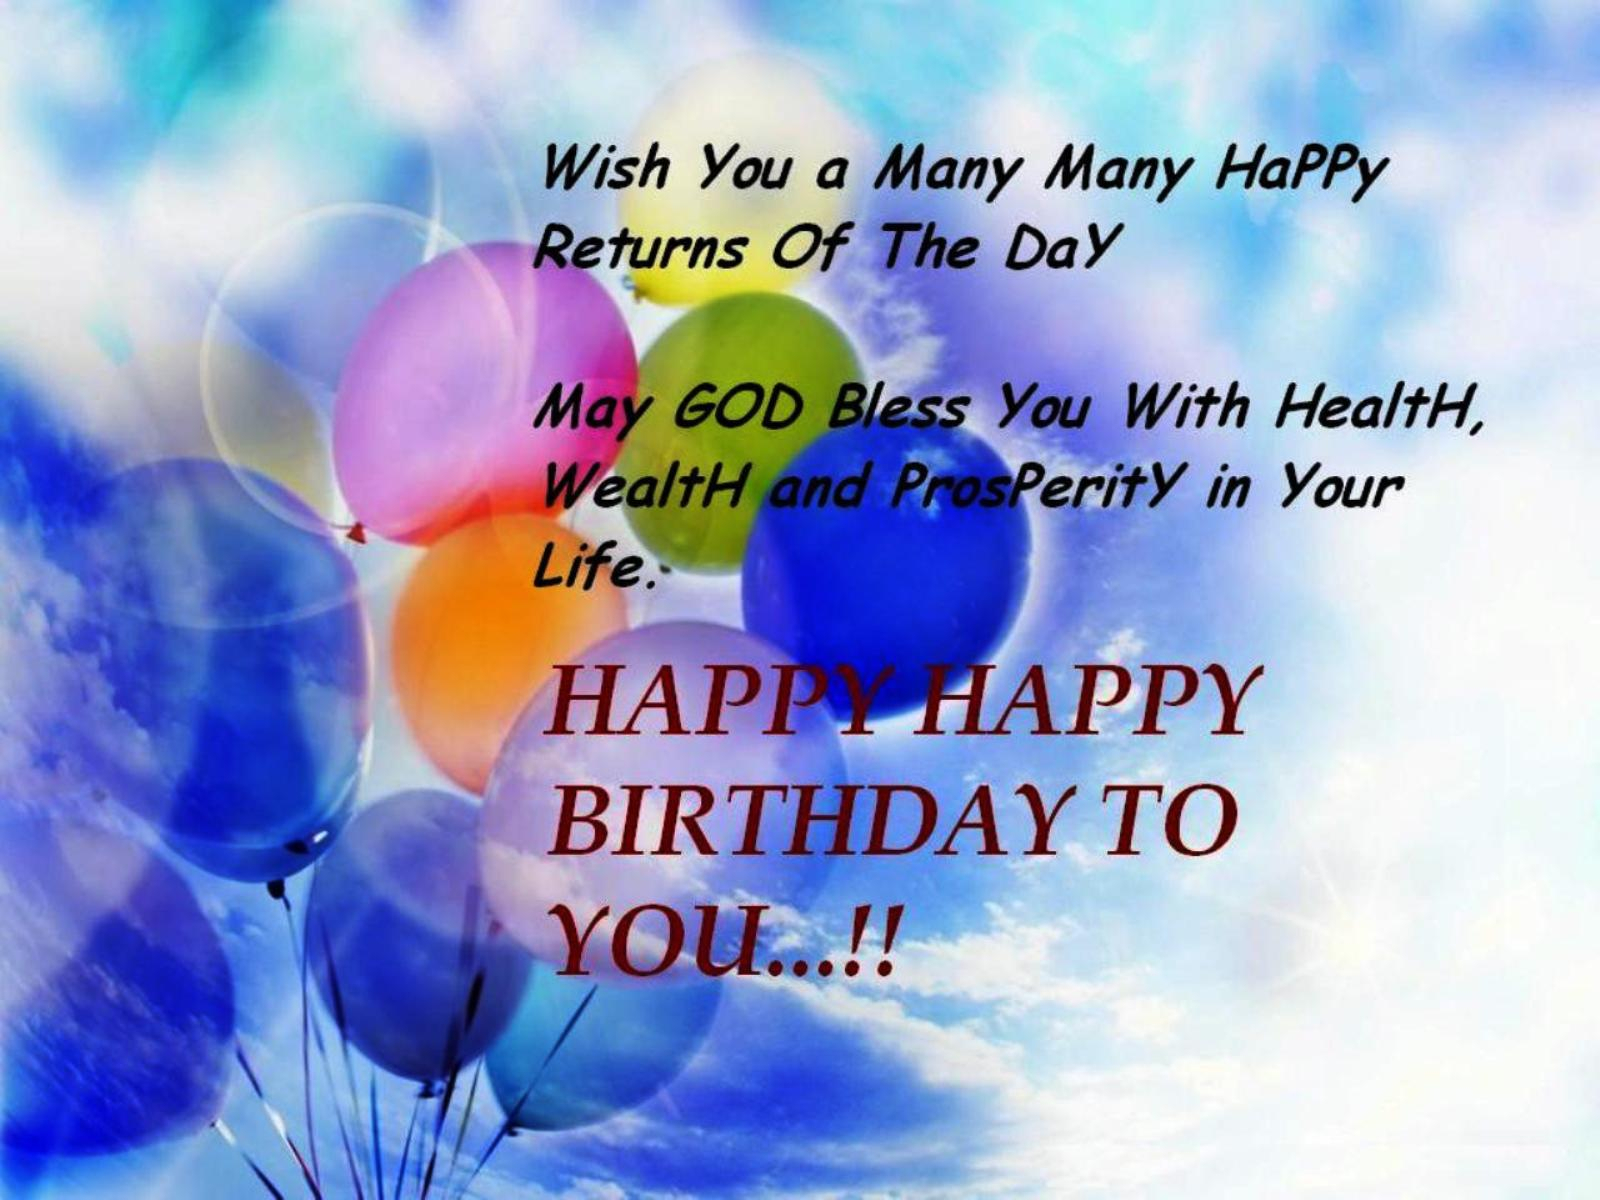 happy birthday boy quotes ; happy-birthday-boy-best-friend-quotes-birthday-wishes-and-greetings-christmas-day-wishes-or-messages